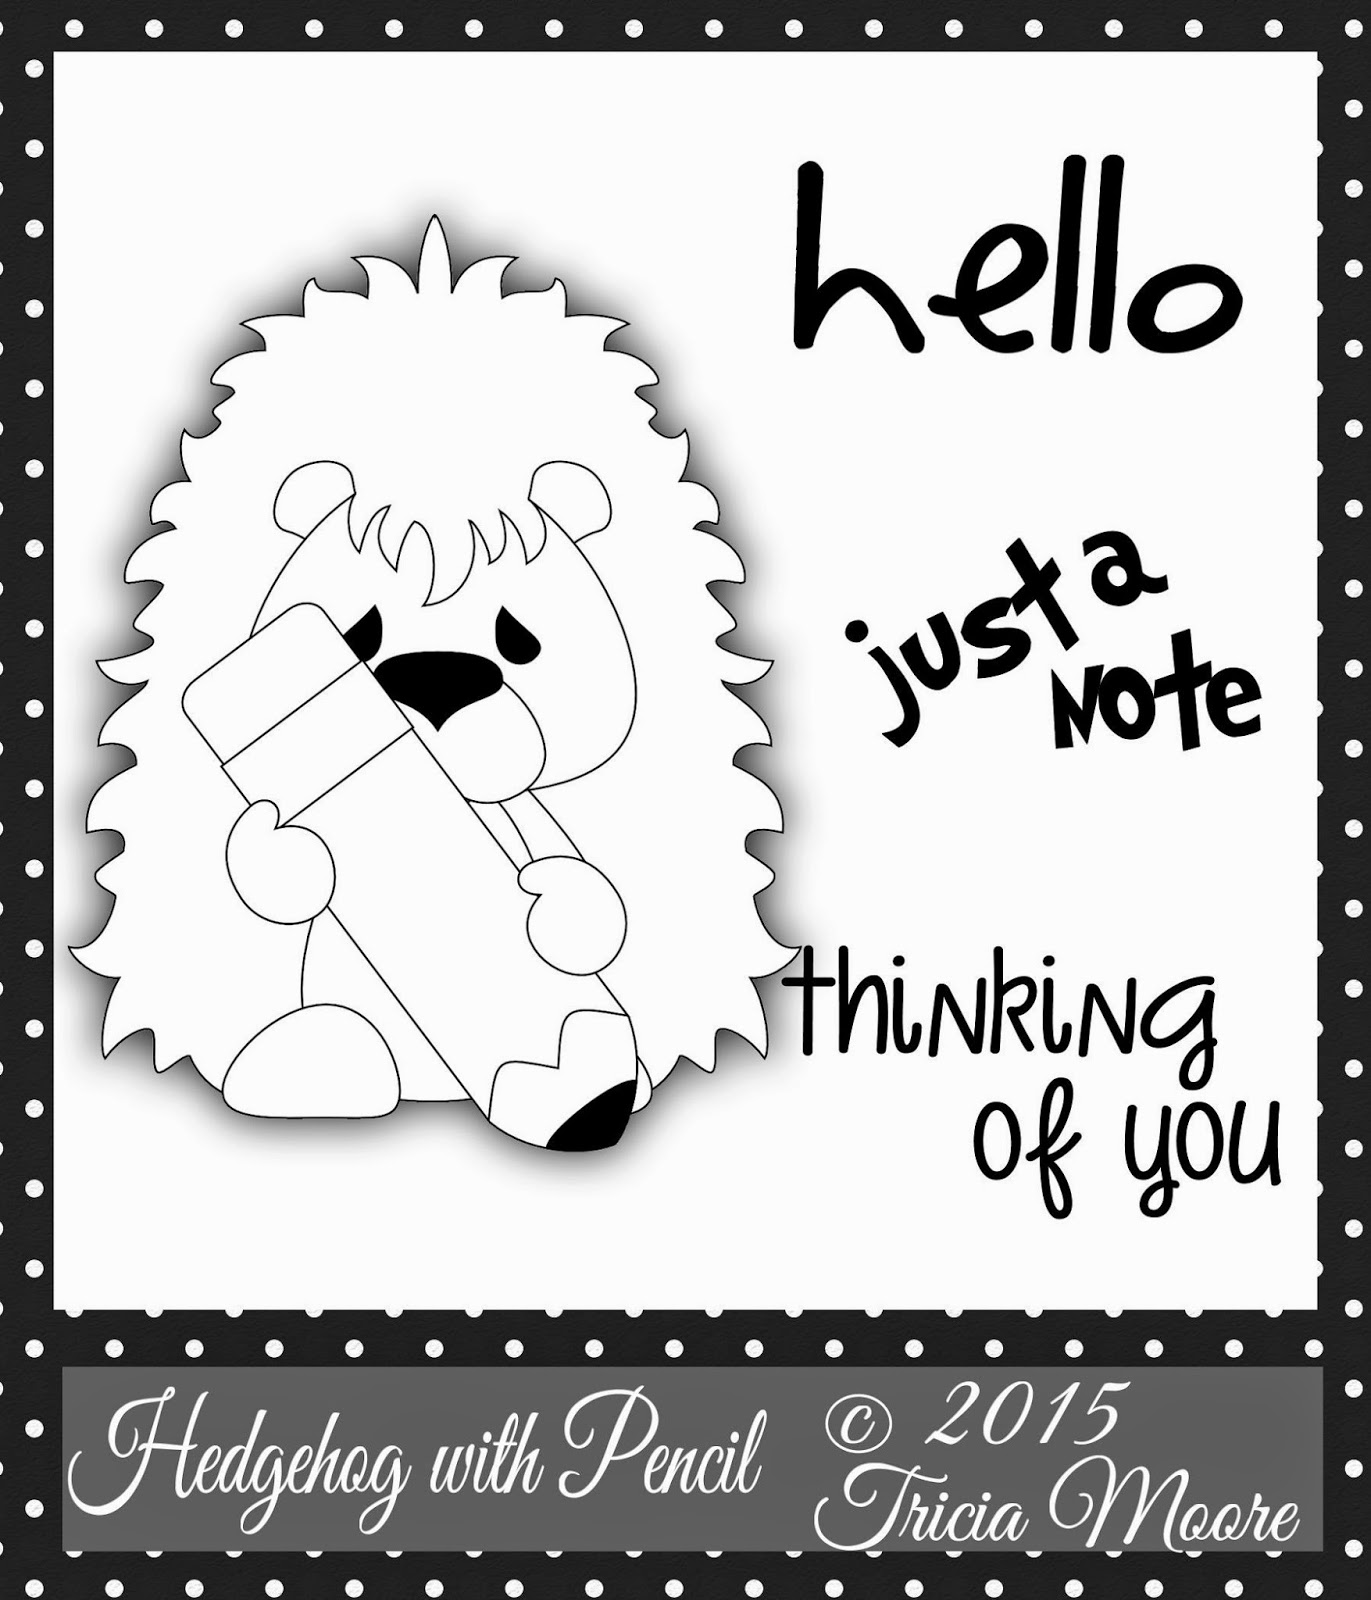 http://www.lshdigidesigns.com/item_52/ds-Hedgehog-with-Pencil-digi.htm